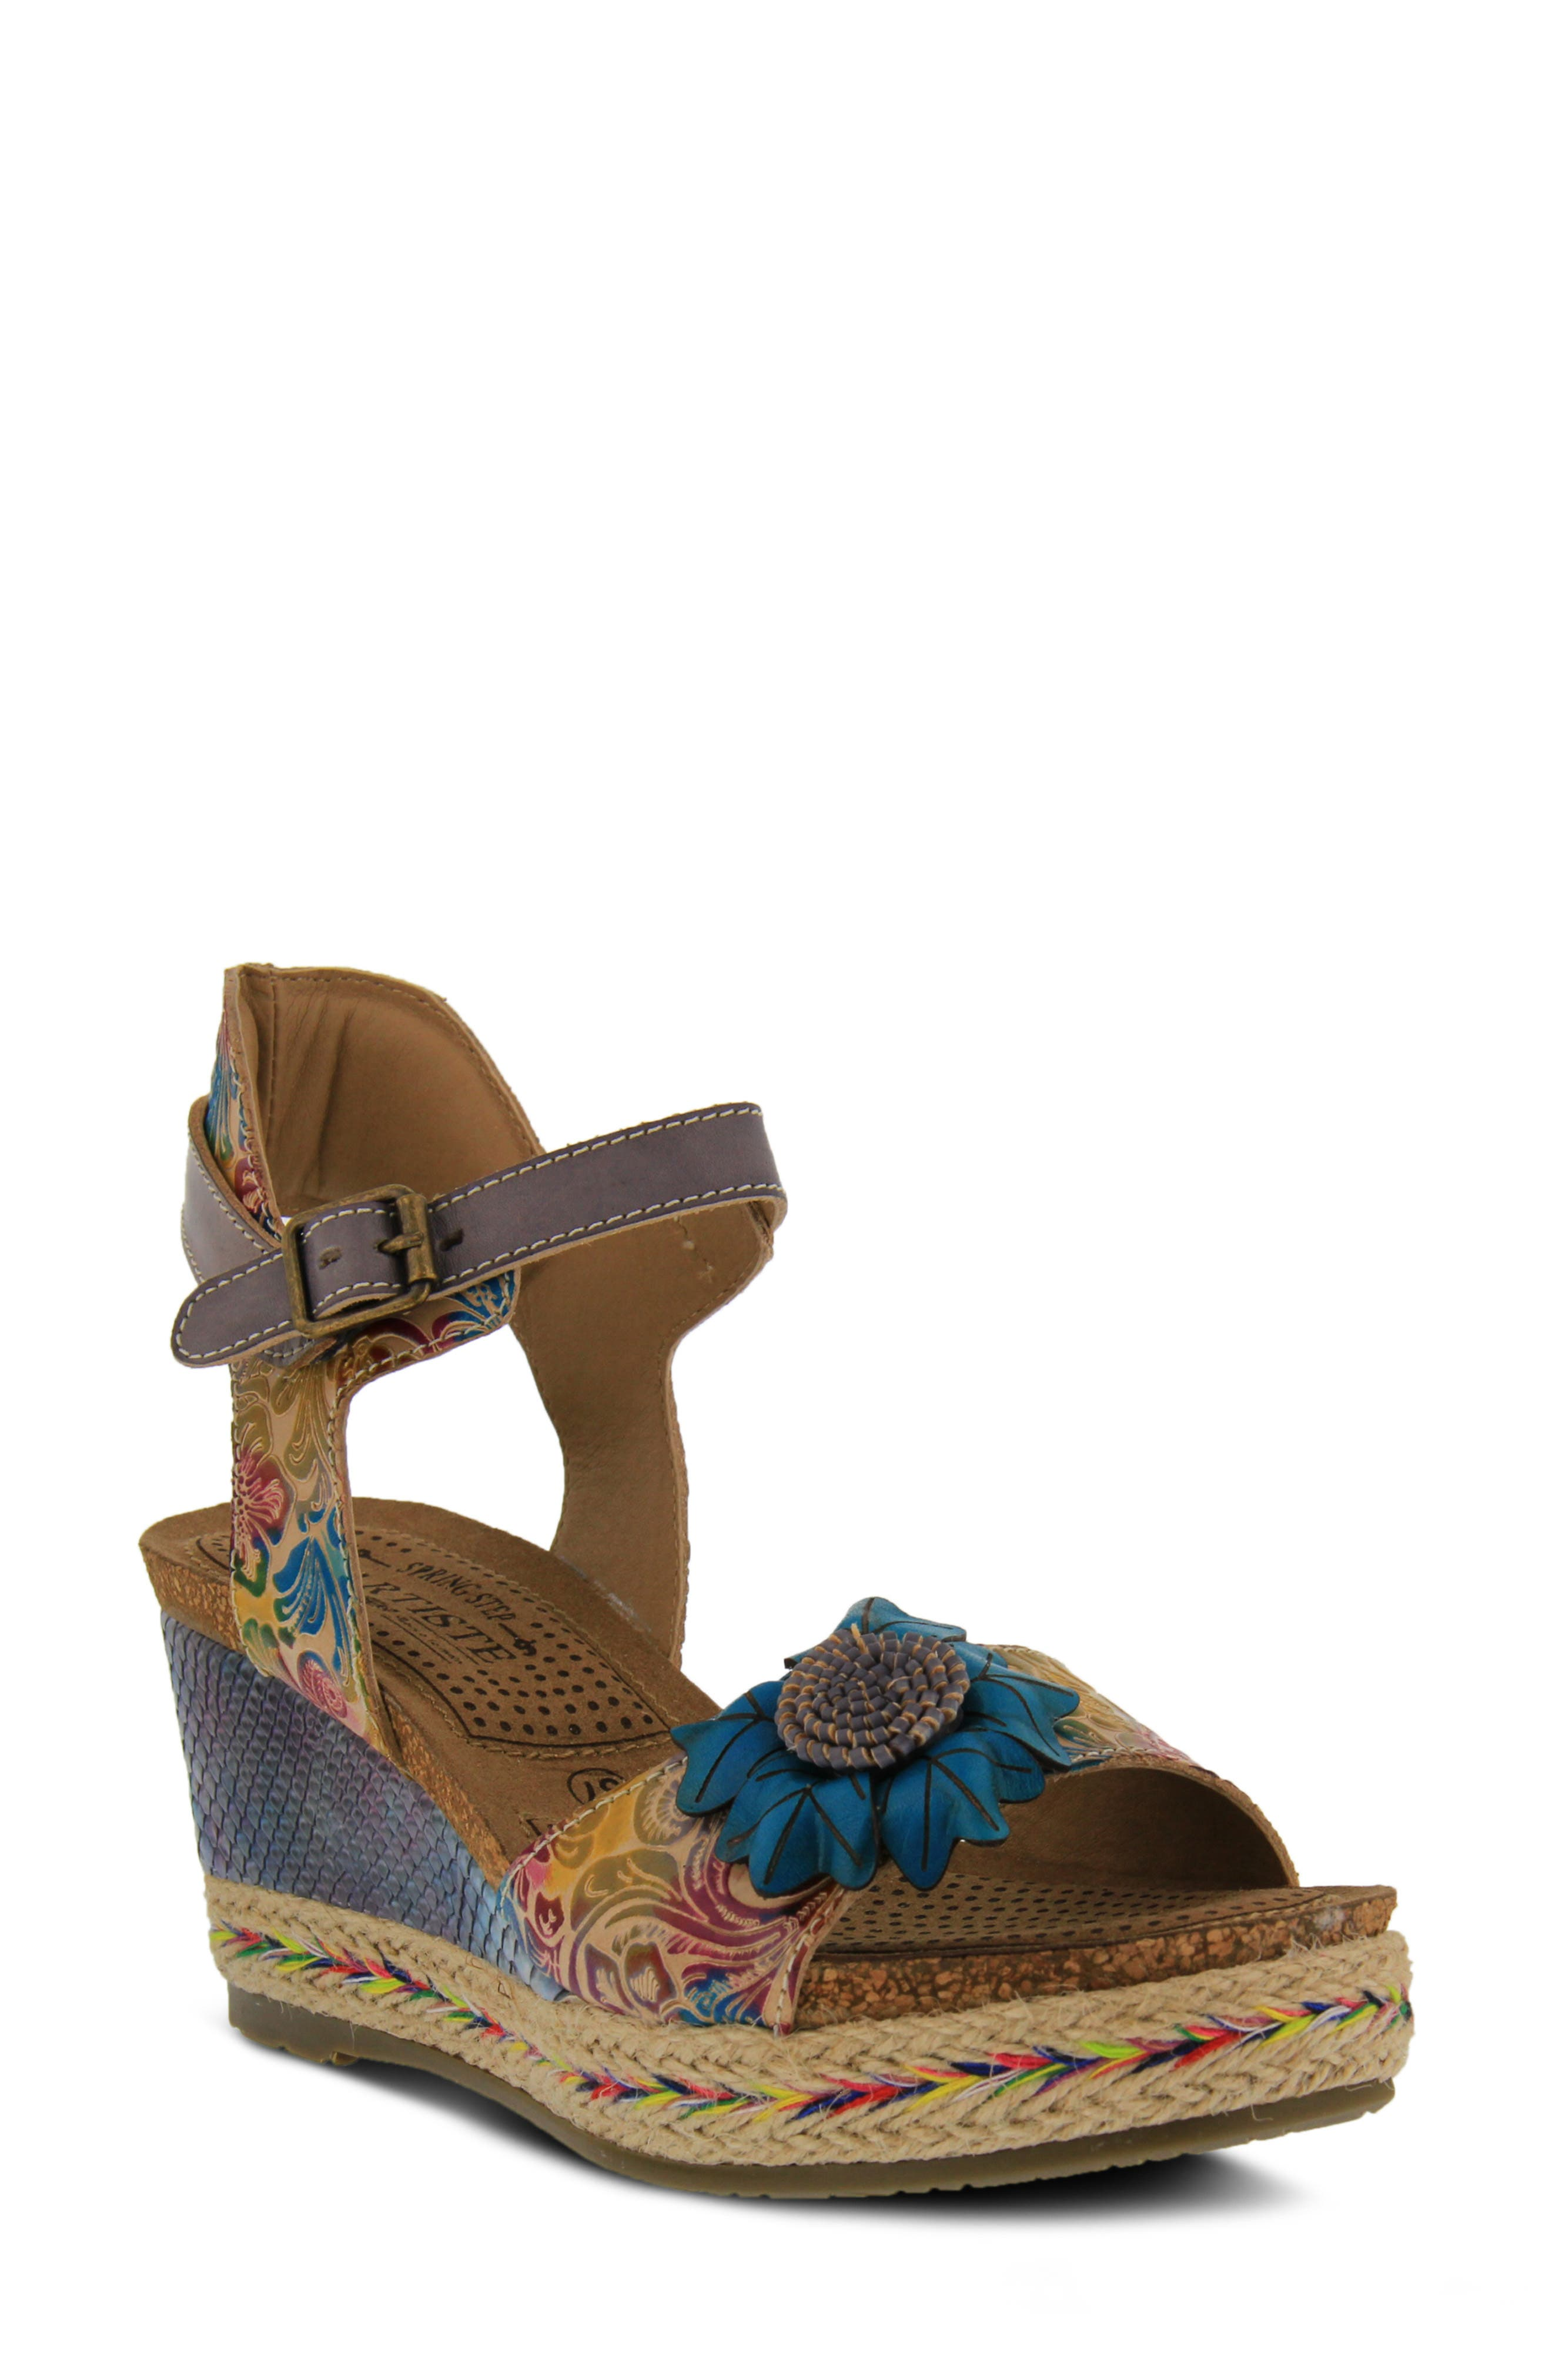 L'ARTISTE Annmarie Wedge Sandal, Main, color, GREY MULTI LEATHER